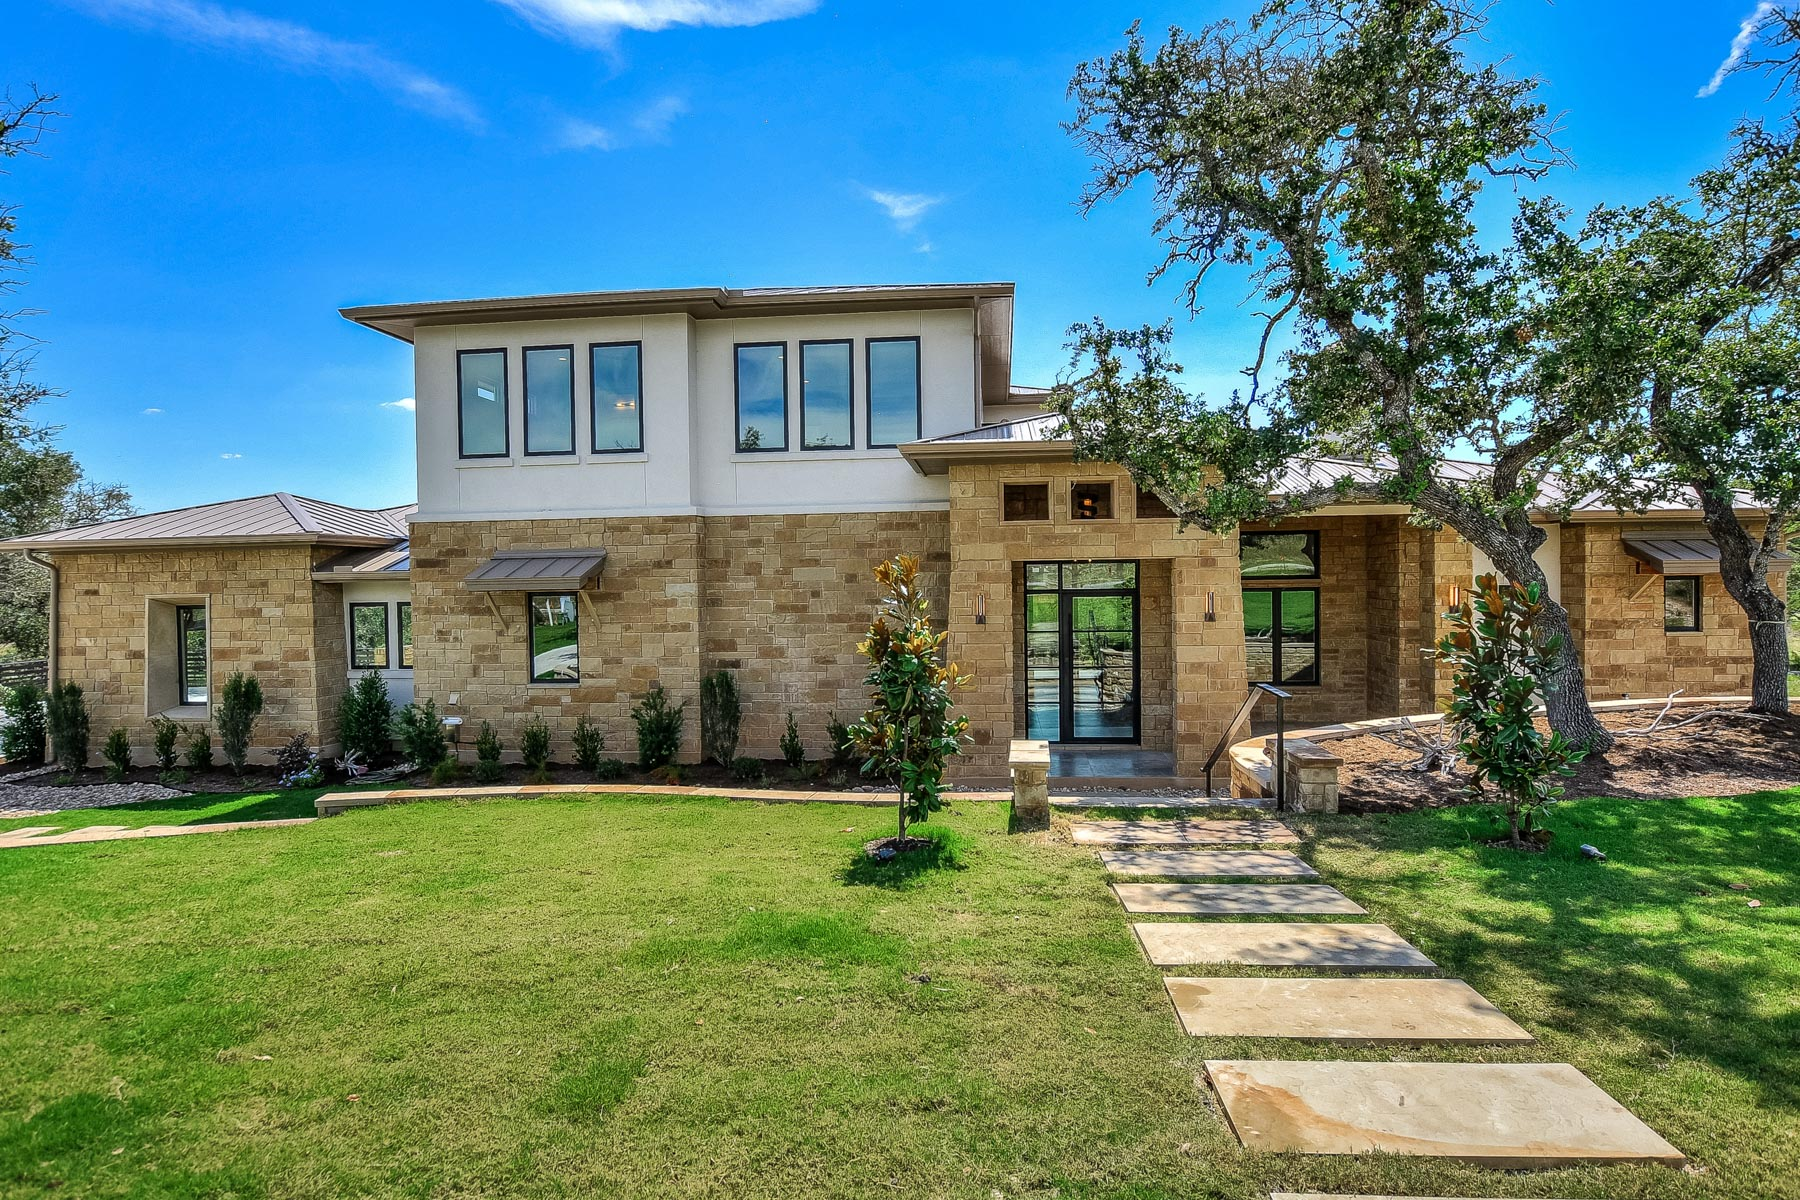 Single Family Home for Sale at New Construction in Belvedere 8600 Rollins Dr Austin, Texas 78738 United States